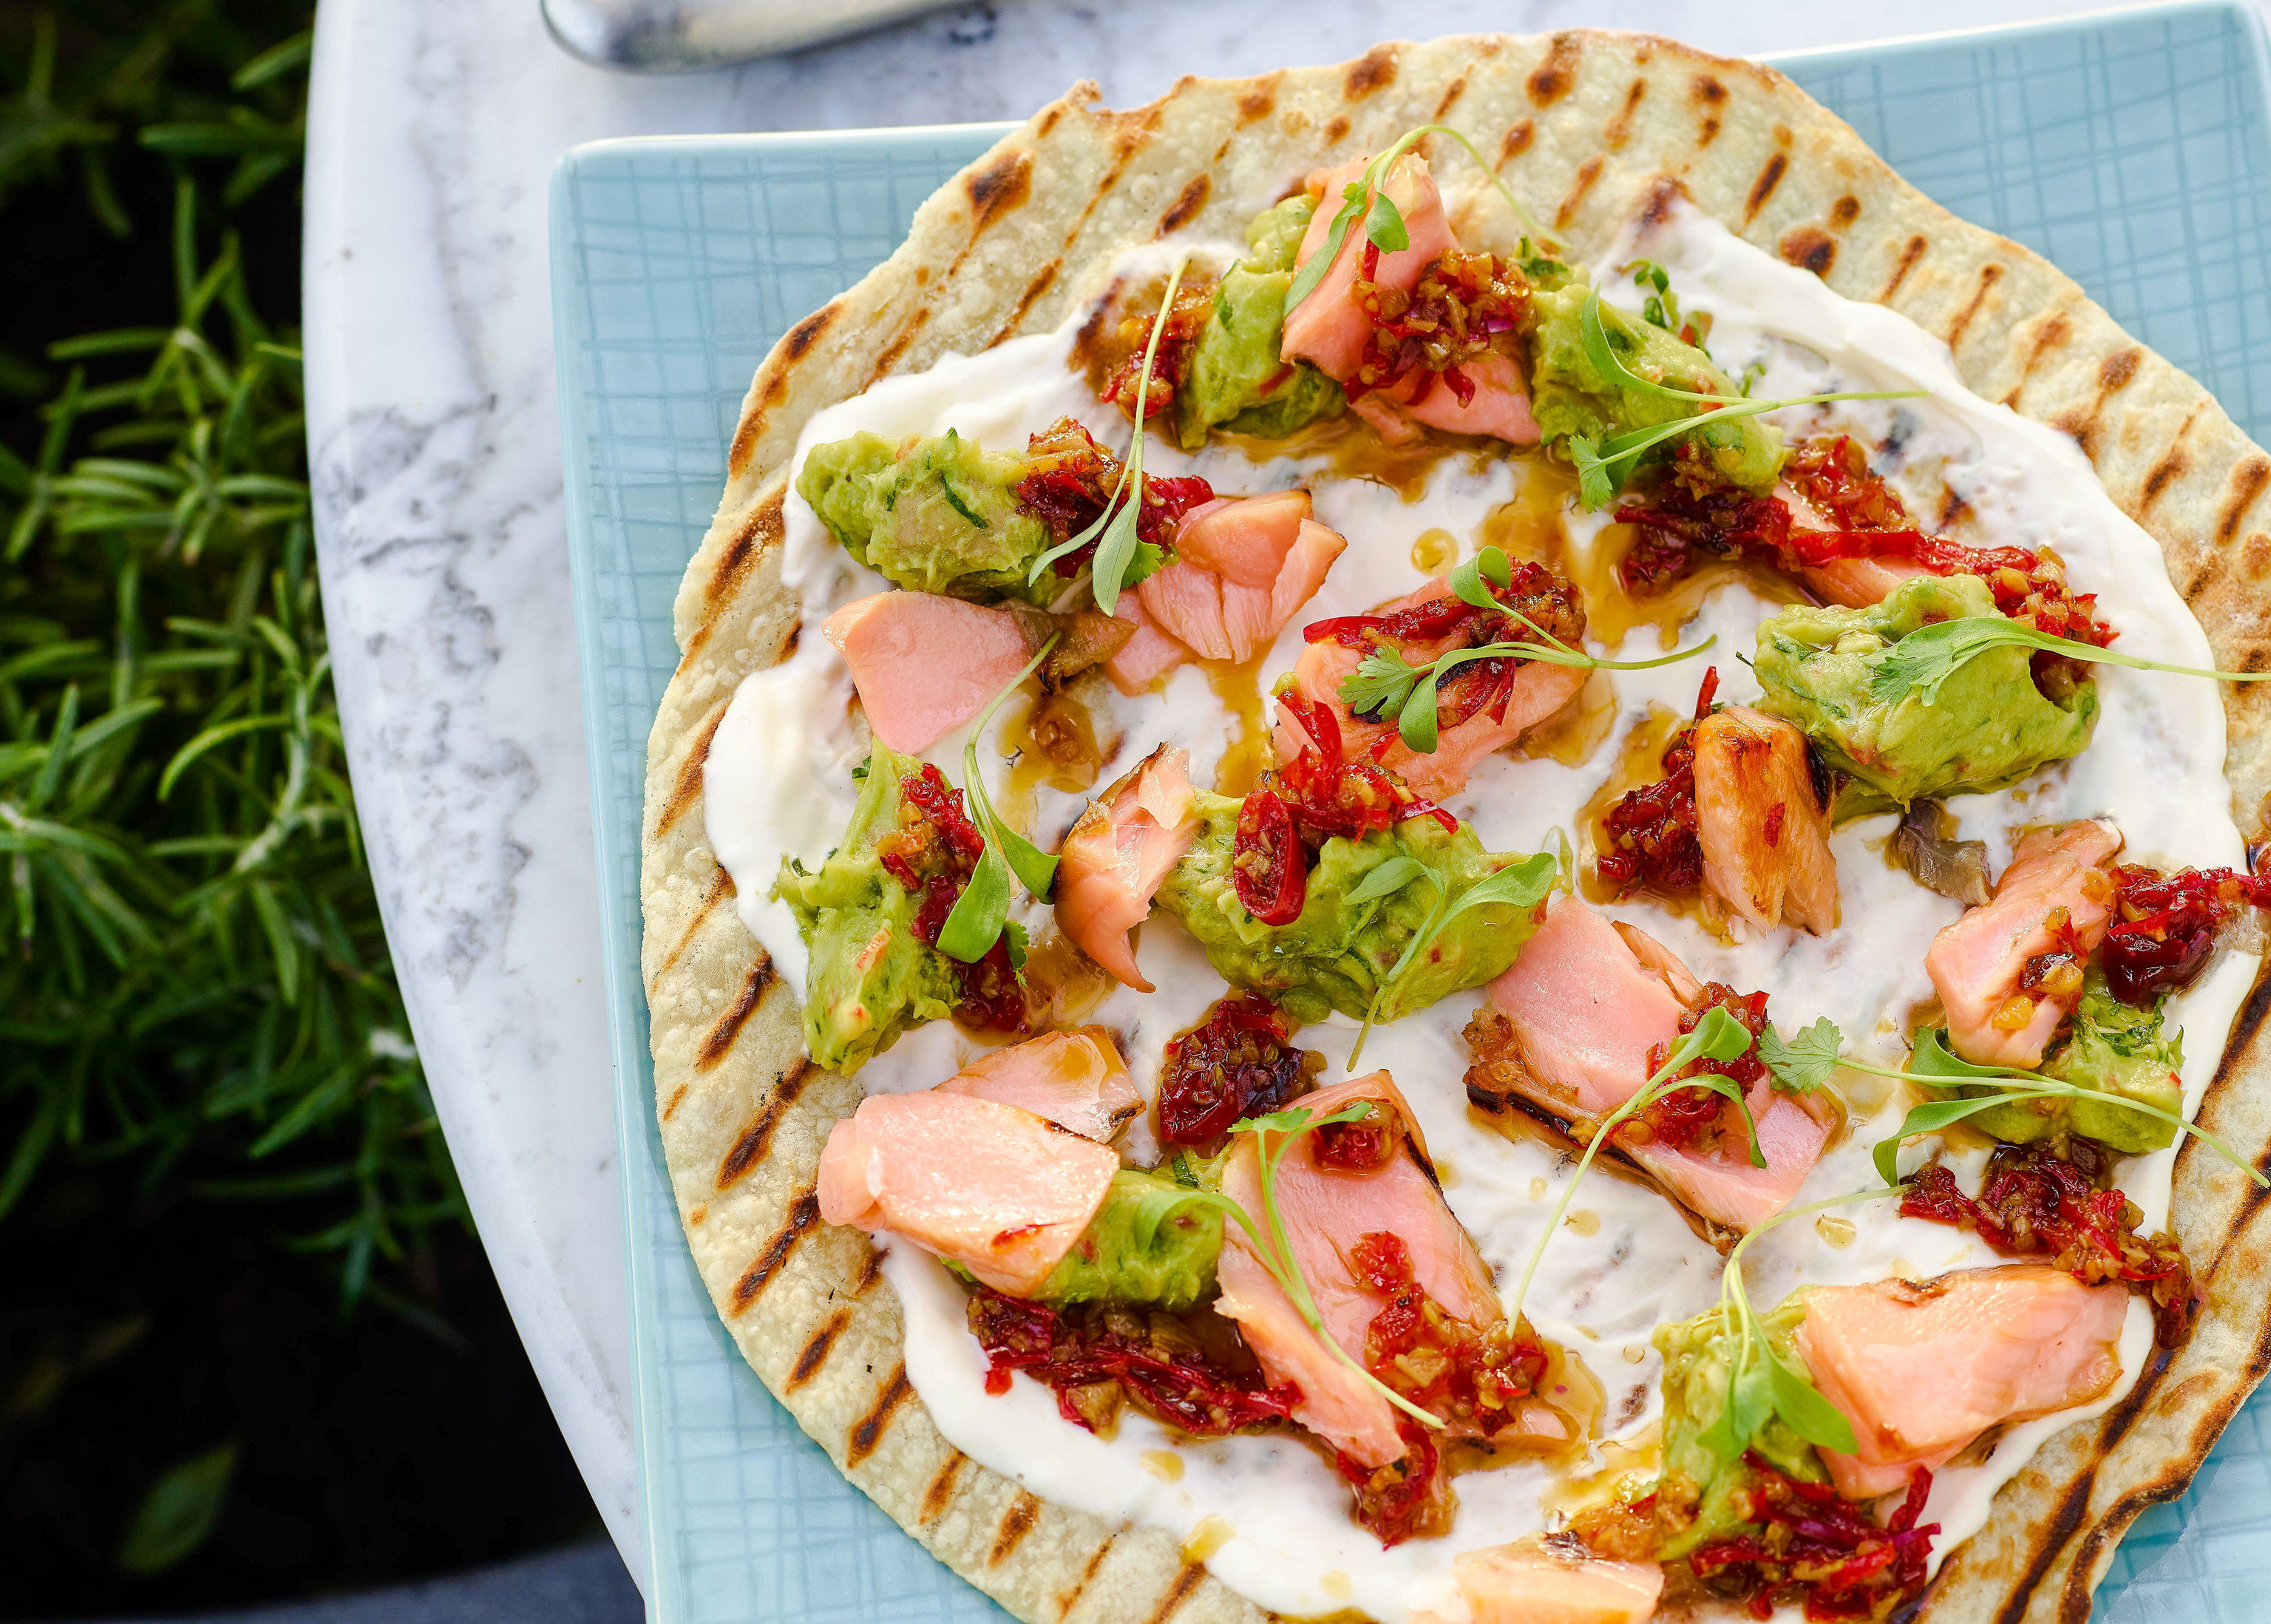 Food + Drink Trip Ideas food dish cuisine tarte flambée flatbread vegetarian food italian food pizza vegetable slice european food quiche finger food california style pizza recipe baked goods leaf vegetable toppings